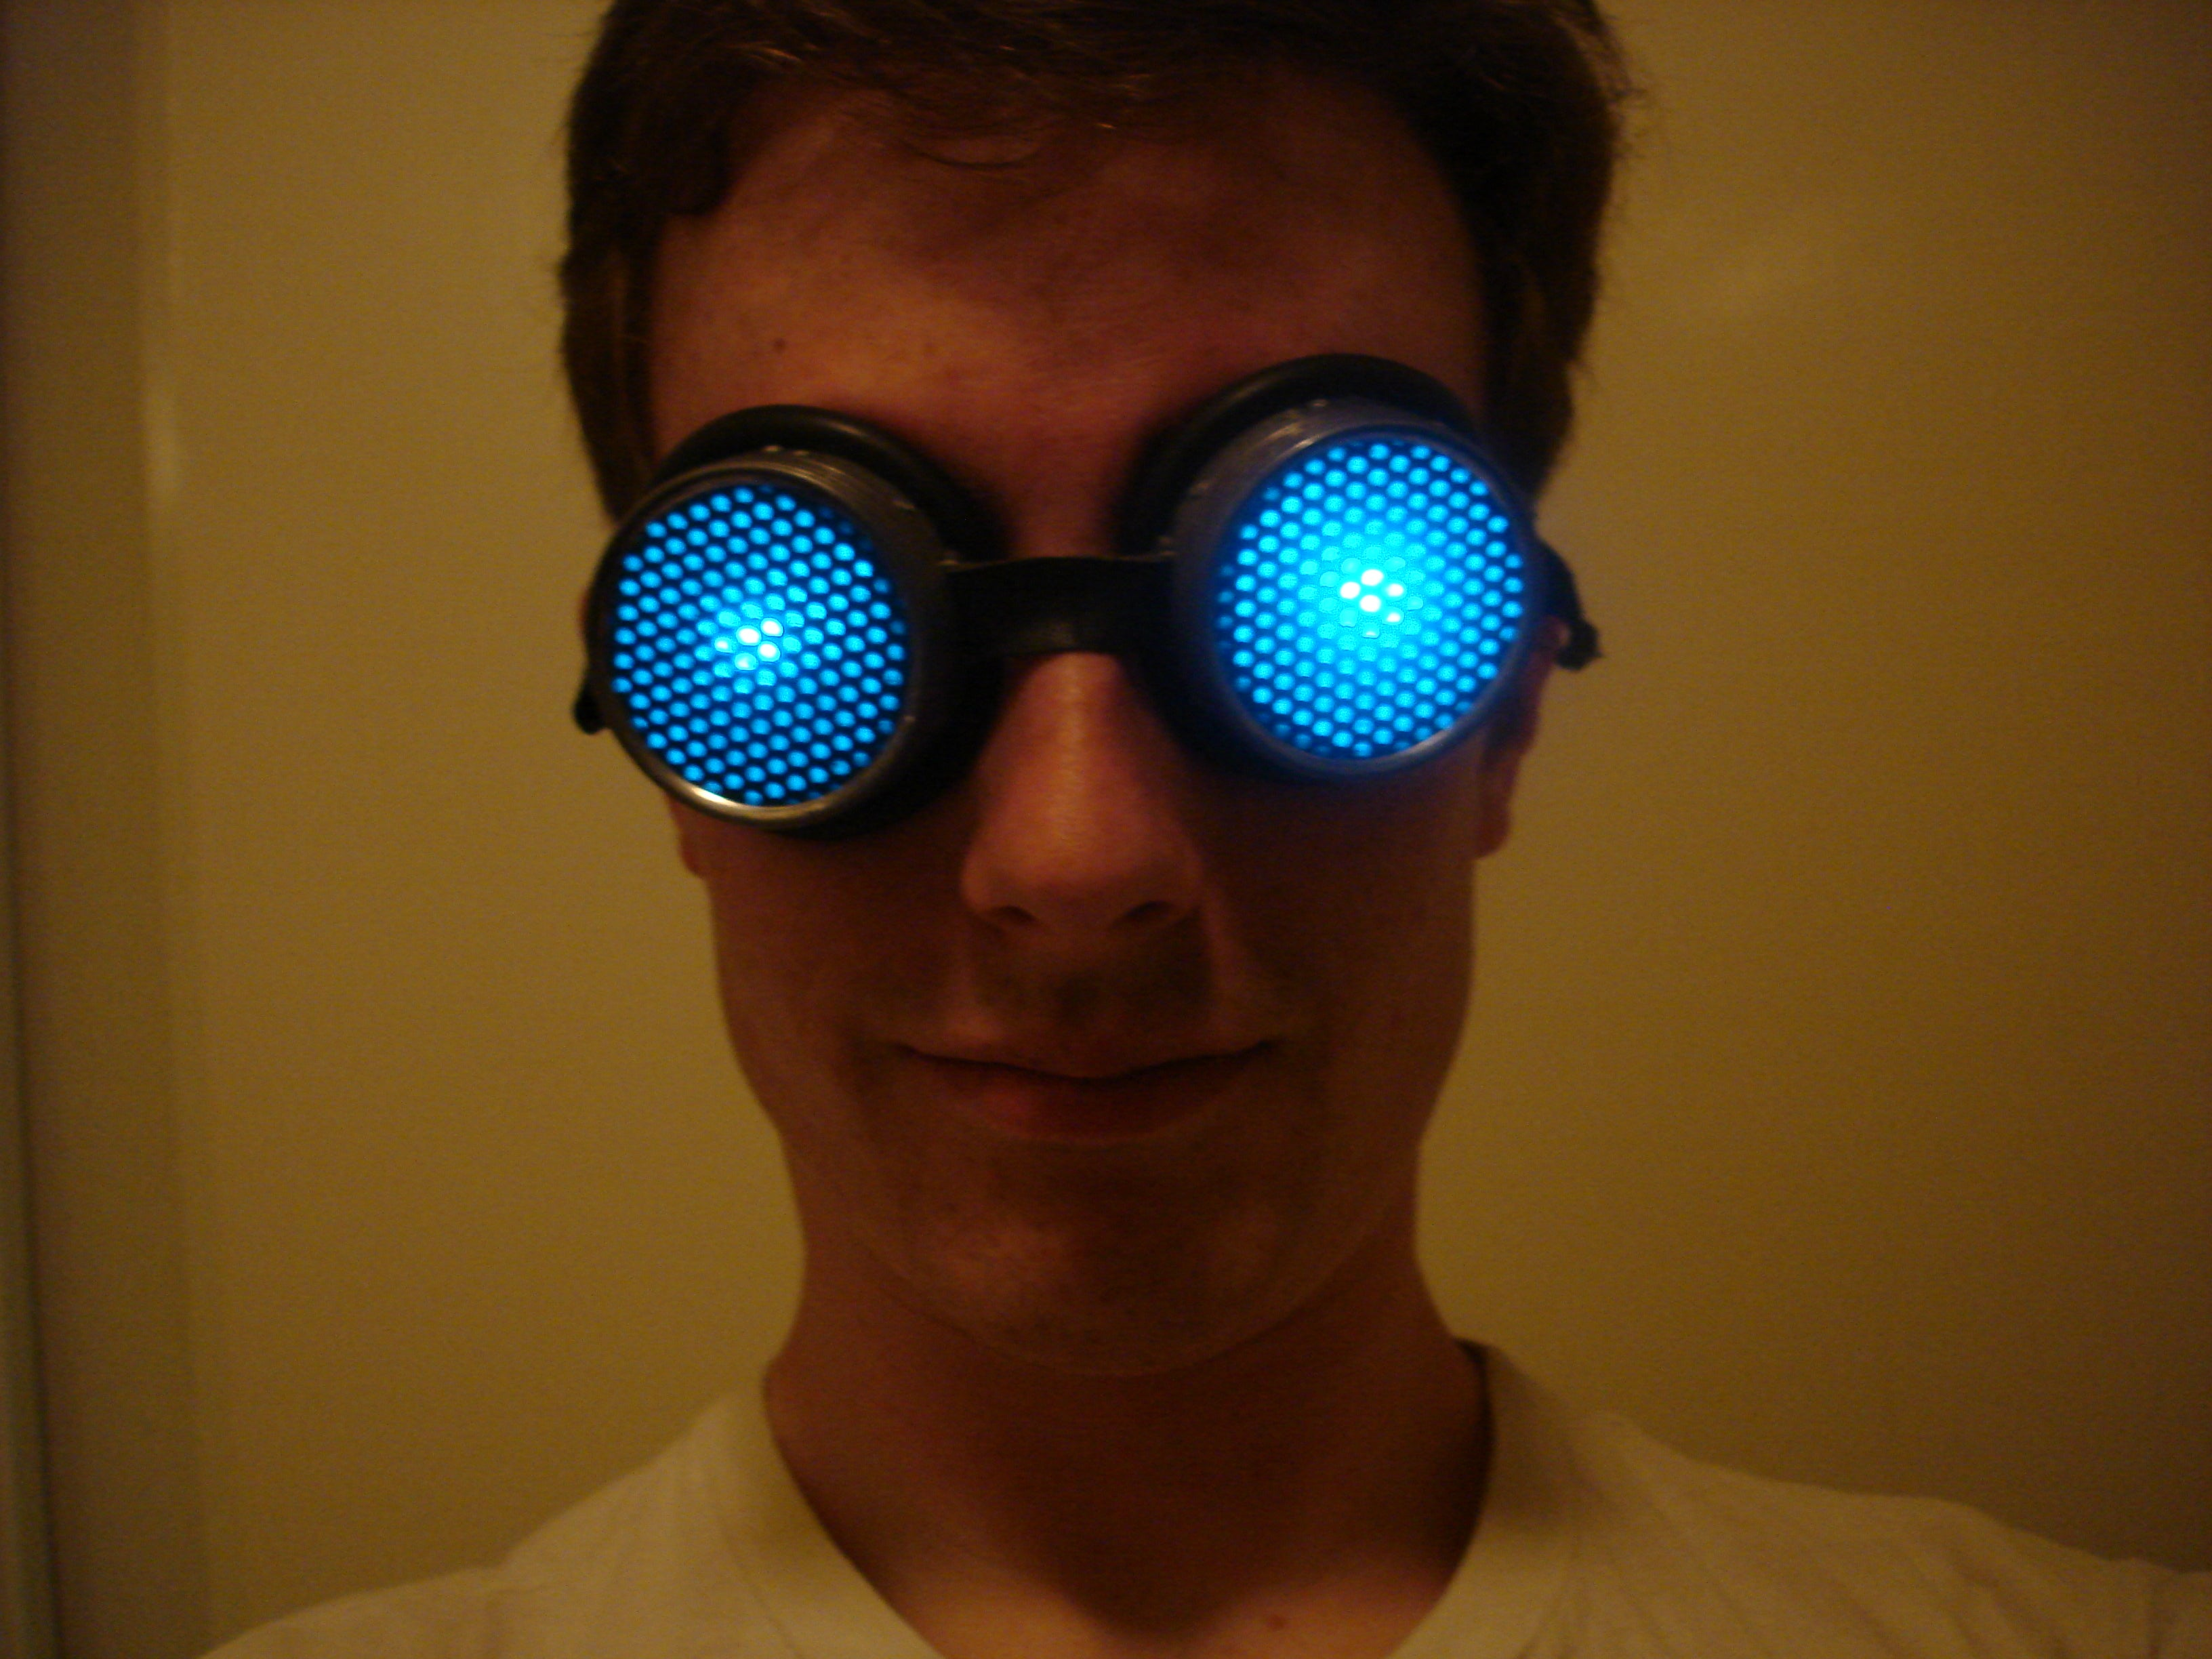 Light Up Goggle Mod : 7 Steps (with Pictures) - Instructables